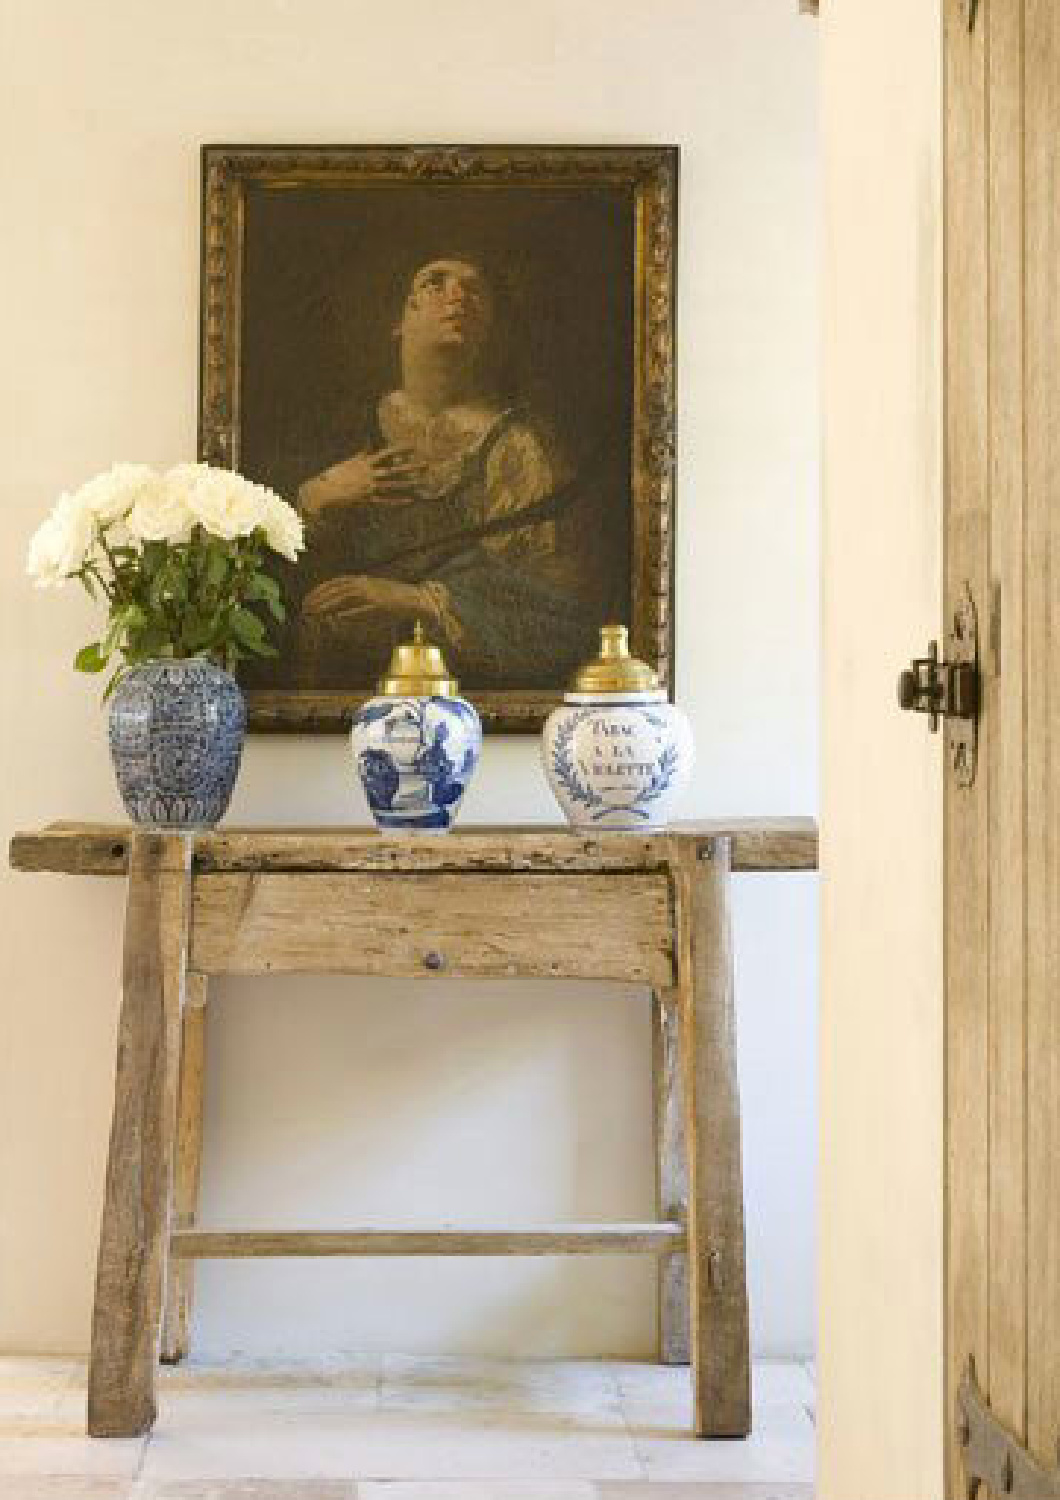 Sophisticated French country interior design inspiration and antiques - Pamela Pierce. Come score ideas for a Timeless and Tranquil European Country Inspired Look. #europeancountry #interiordesign #frenchcountry